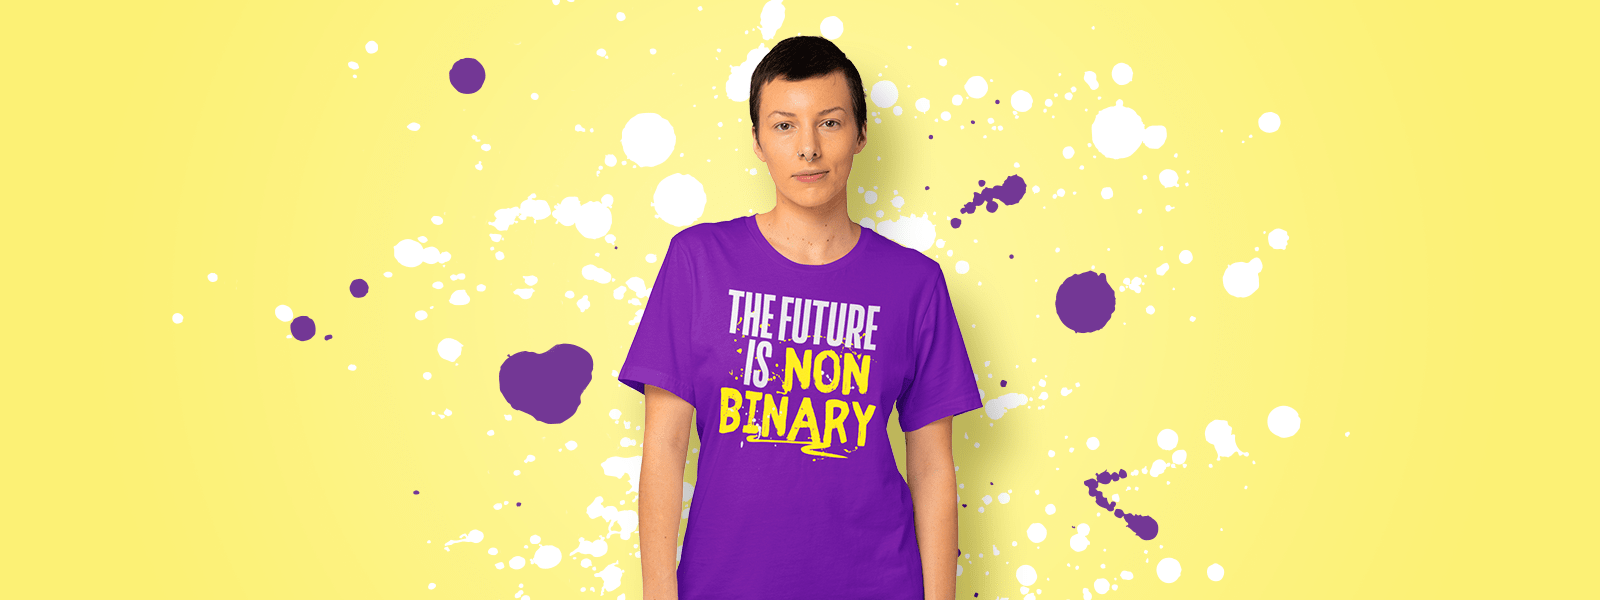 Best Gift Ideas for Non-Binary People